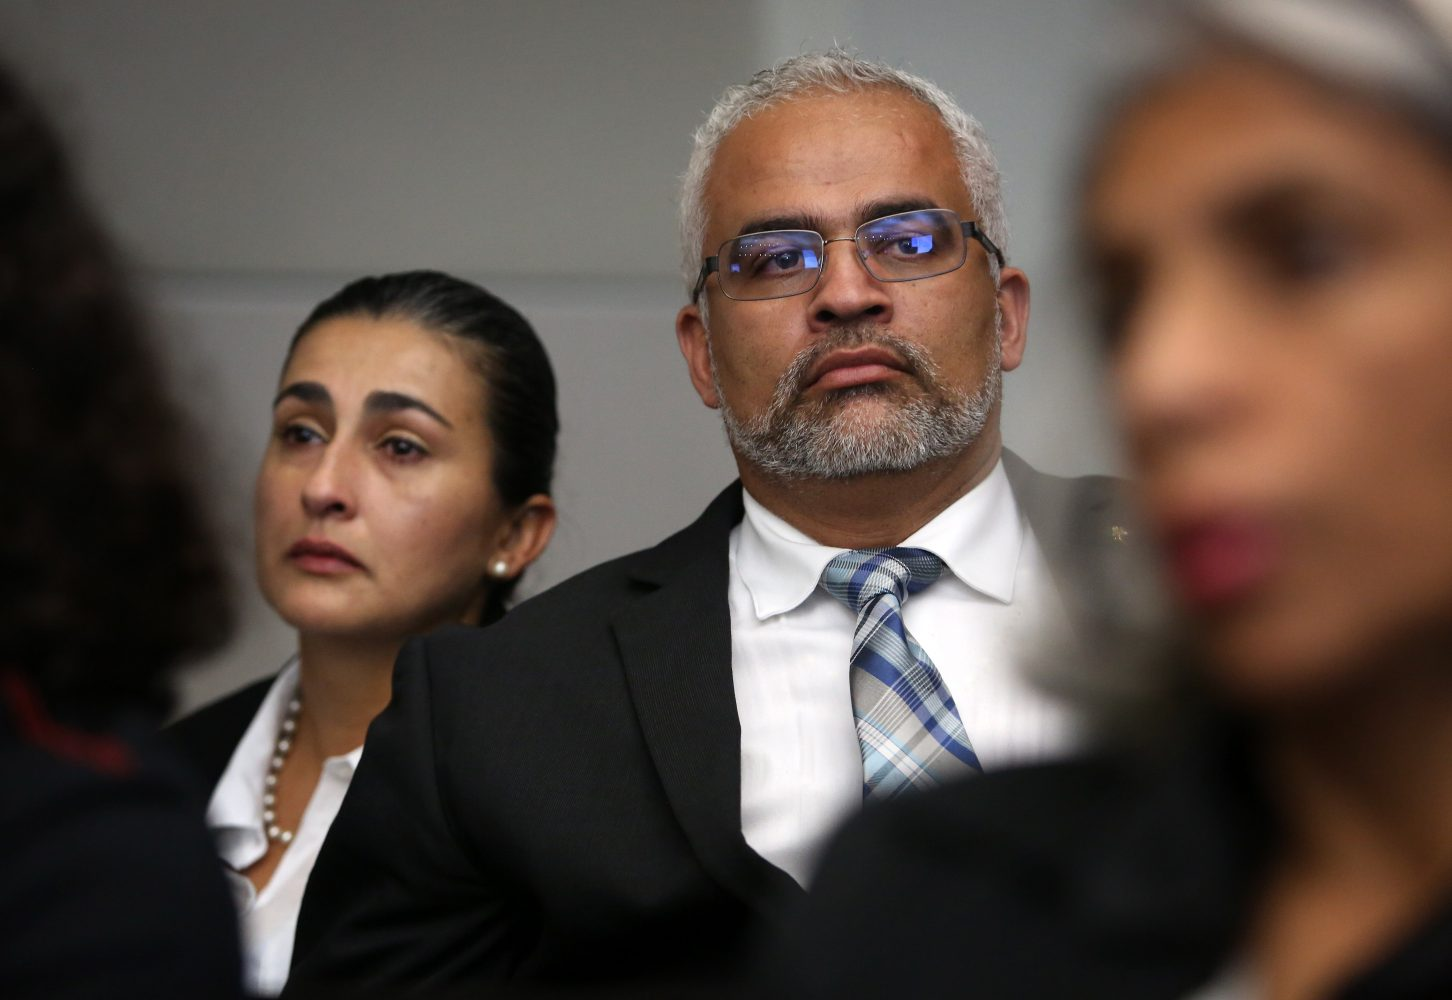 Carlos and Claudia Aguilar listen as the prosecution gives opening statements in the case against Pedro Bravo in courtroom 1B of the Alachua County Criminal Justice Center Tuesday, August 5, 2014.  Bravo is accused of murdering their son.  (Doug Finger/The Gainesville Sun/Pool)